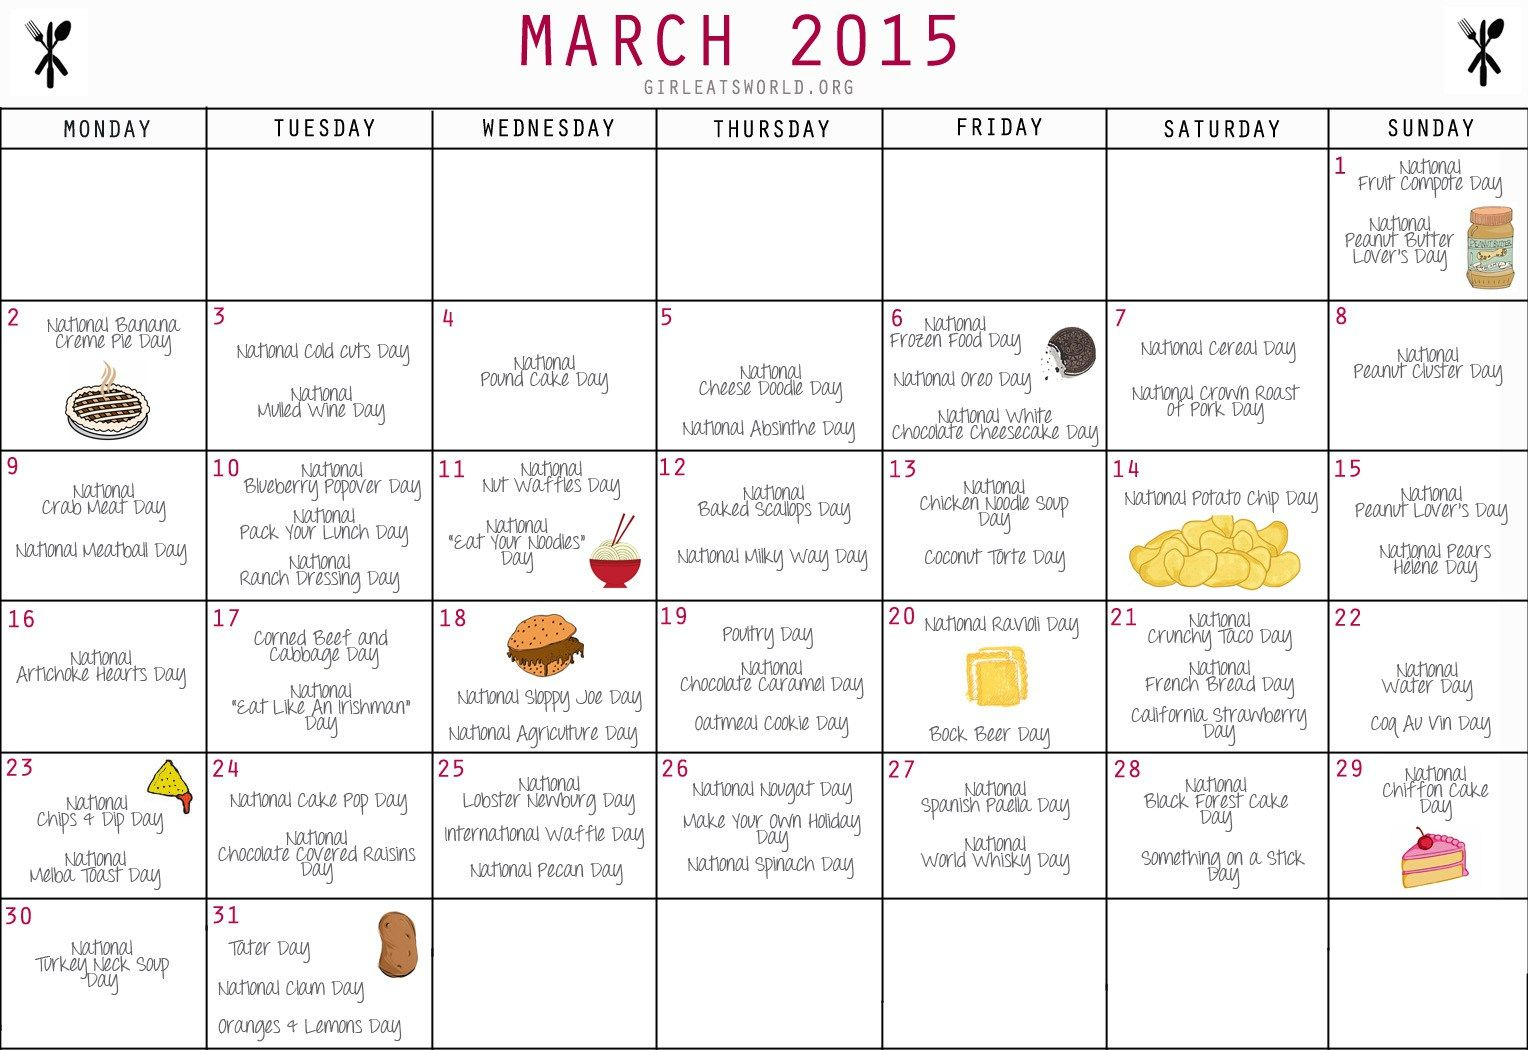 March Calendar | Every Day Is A Day To Celebrate Something